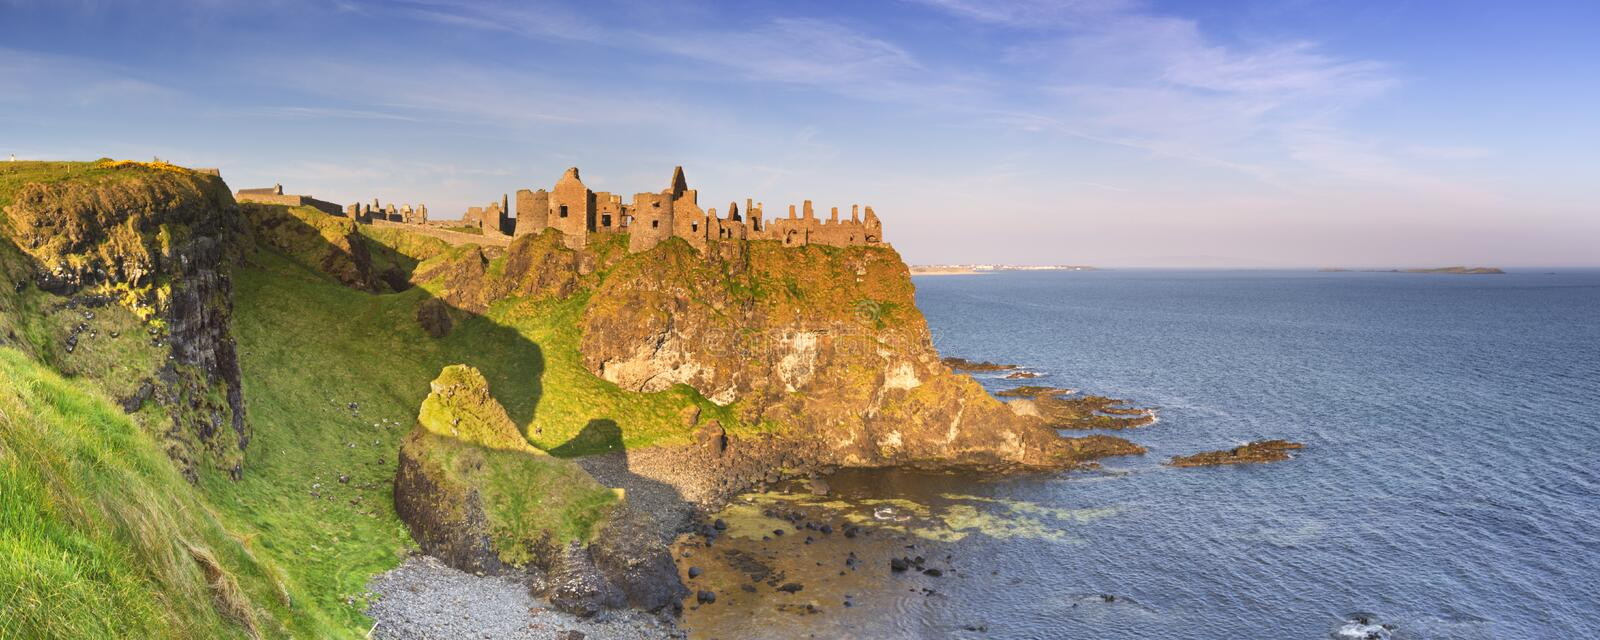 Dunluce Castle in Northern Ireland on a sunny morning royalty free stock image